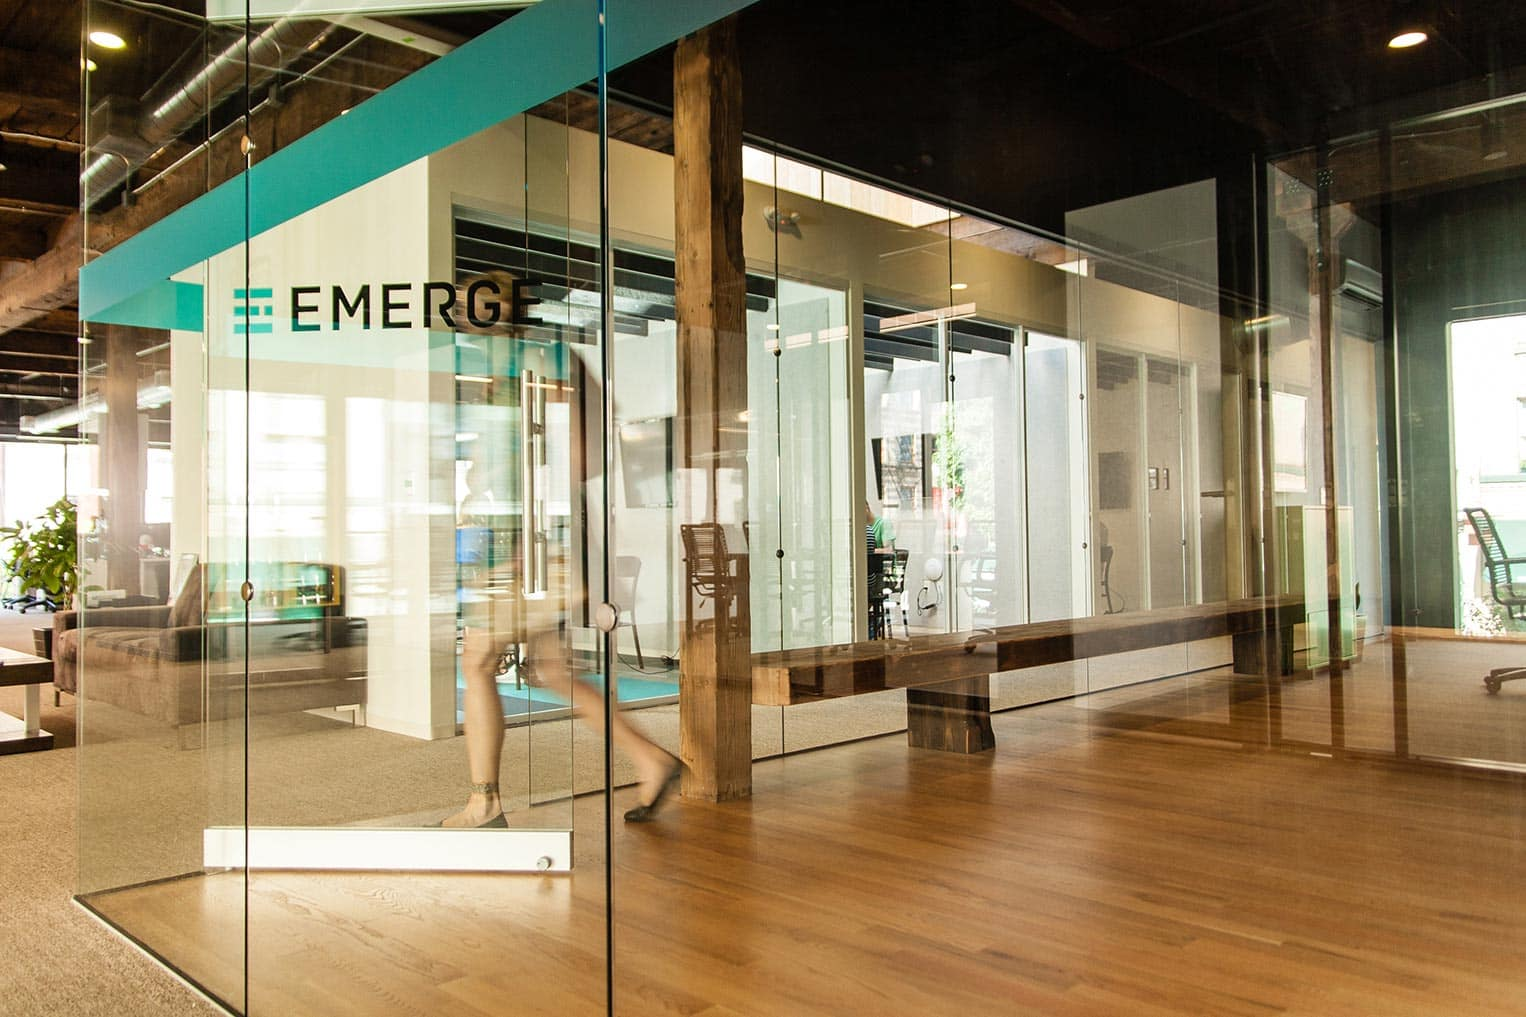 Emerge Interactive office space, Portland, OR